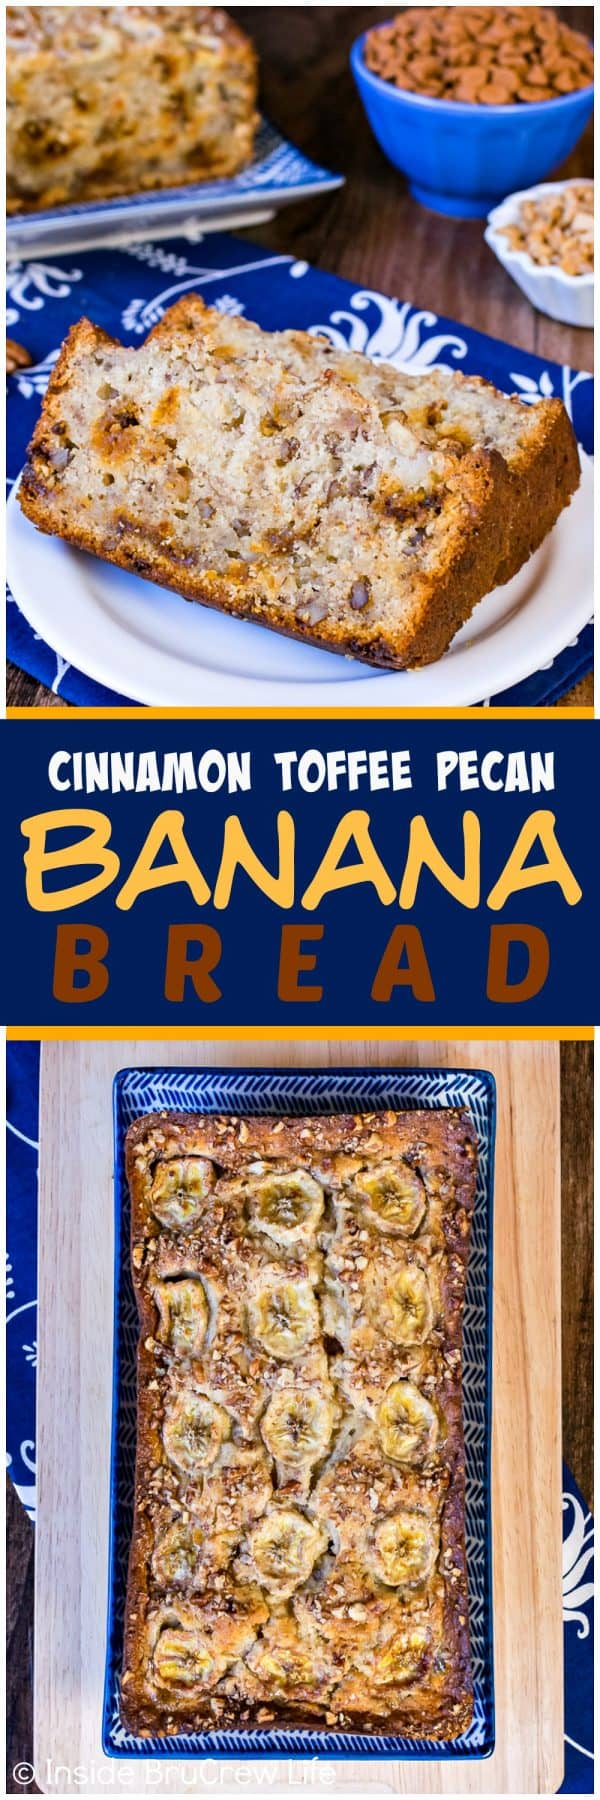 Cinnamon Toffee Pecan Banana Bread - this easy sweet bread is loaded with cinnamon chips and pecans. It's a great recipe to use up those ripe bananas on your counter!